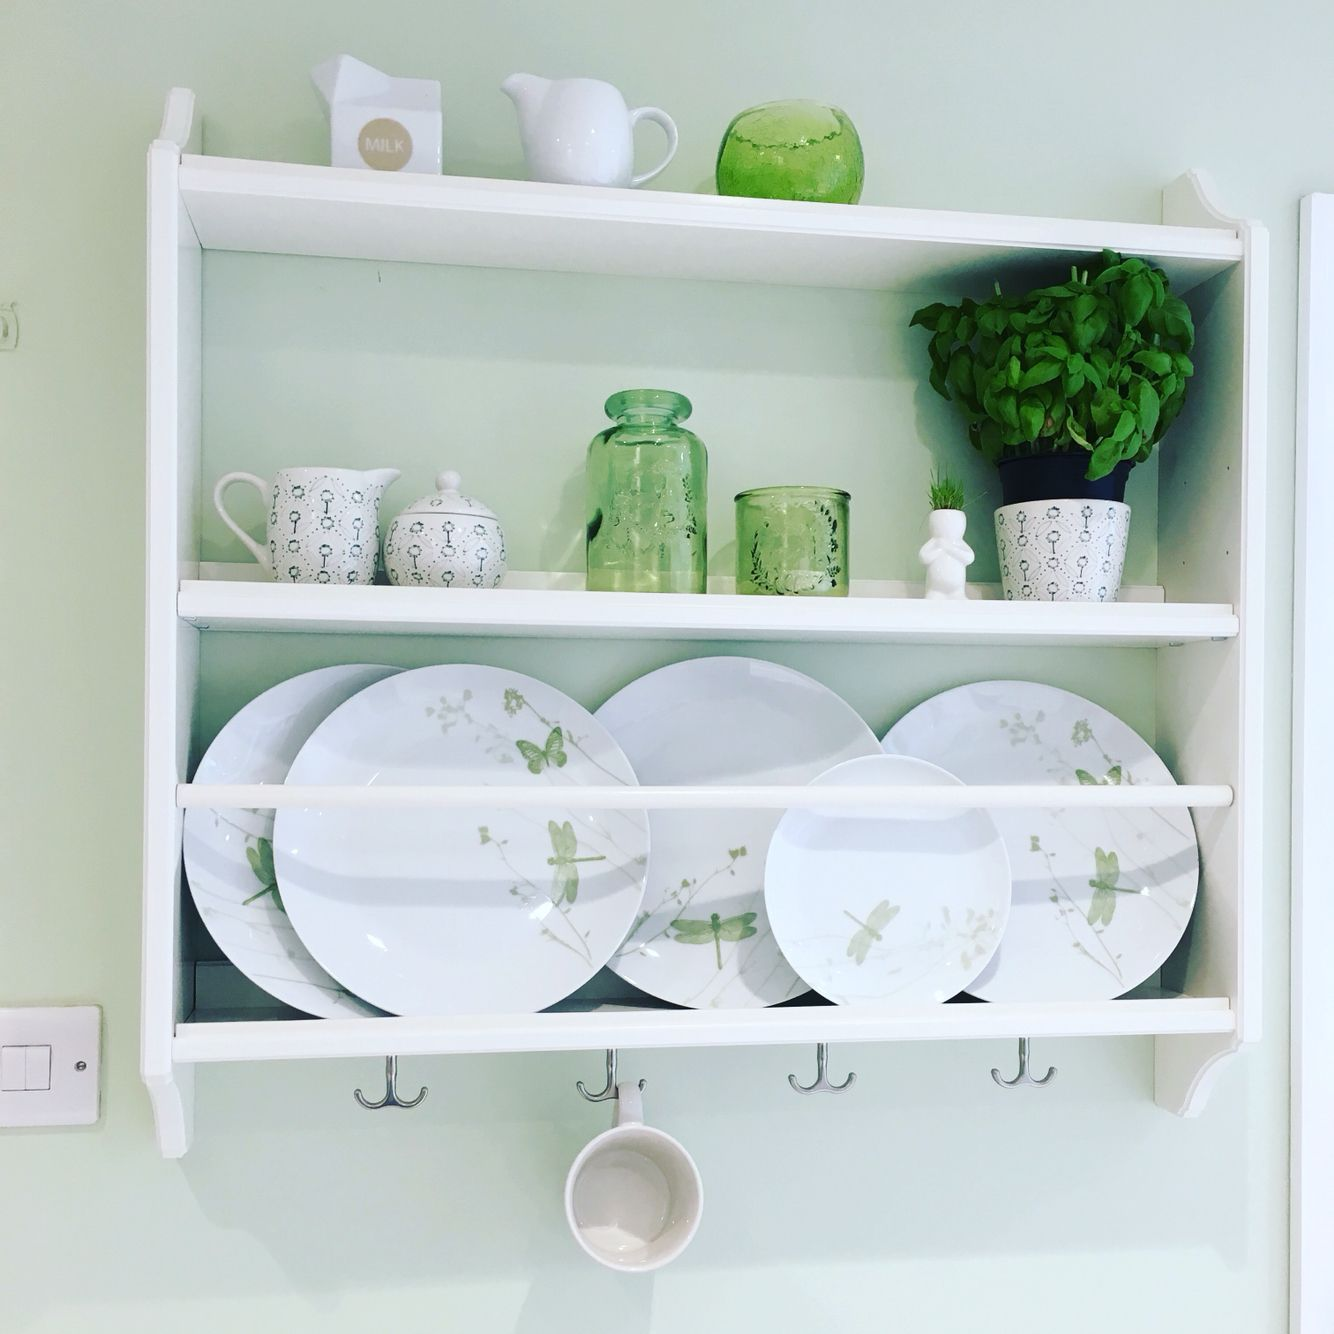 Stenstorp ikea plate rack in a green and white kitchen for Ikea plate storage